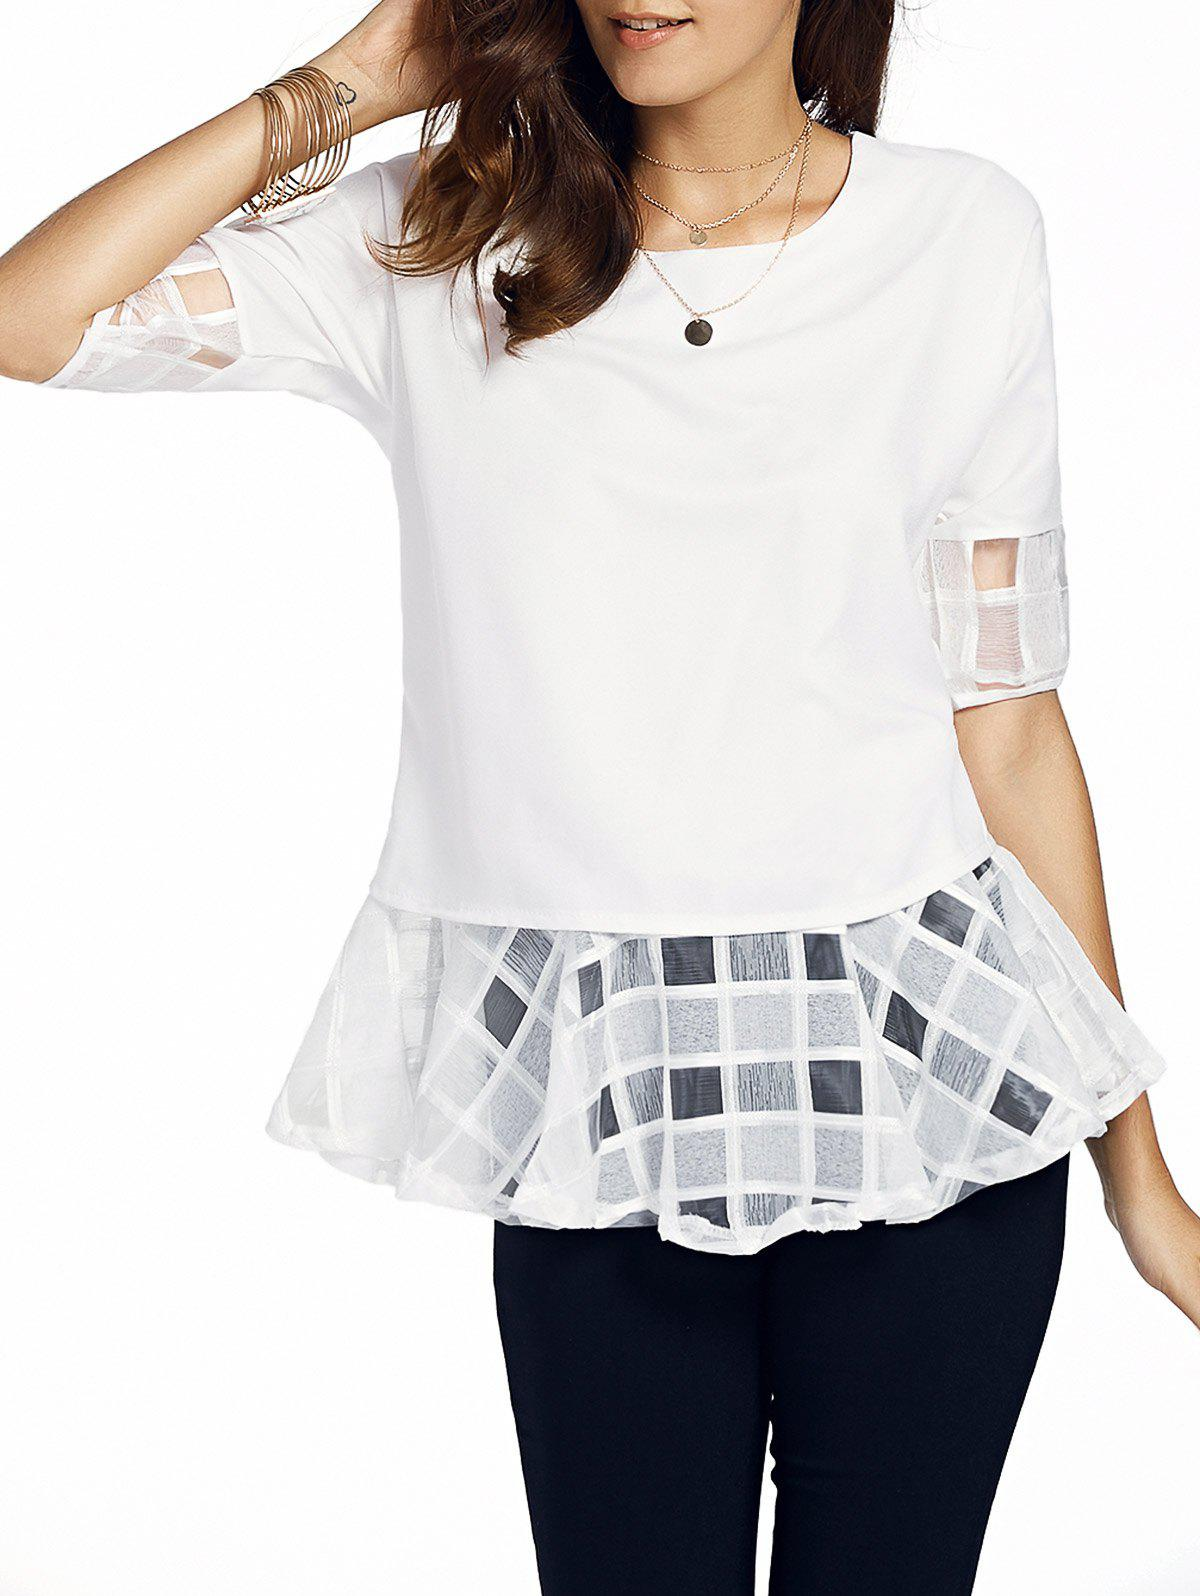 Sweet Half Sleeve Round Neck Bowknot Design Spliced Chiffon Blouse For Women - WHITE XL